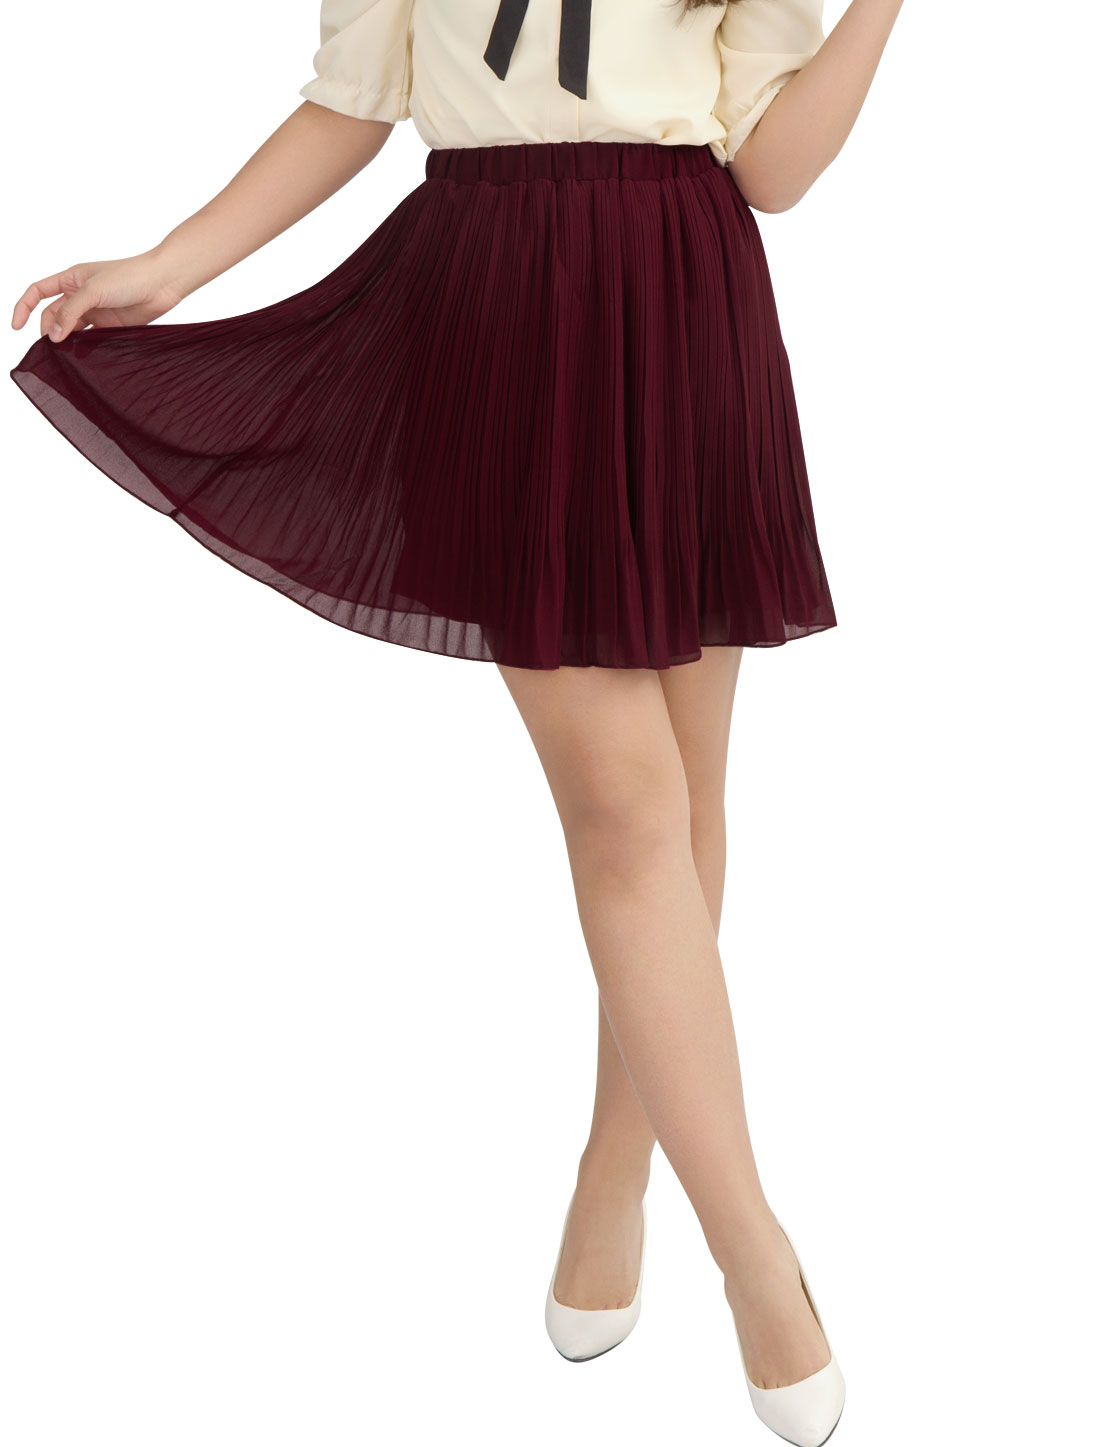 Lady Burgundy Stretchy Waistband Pleated Mini Skirt XS